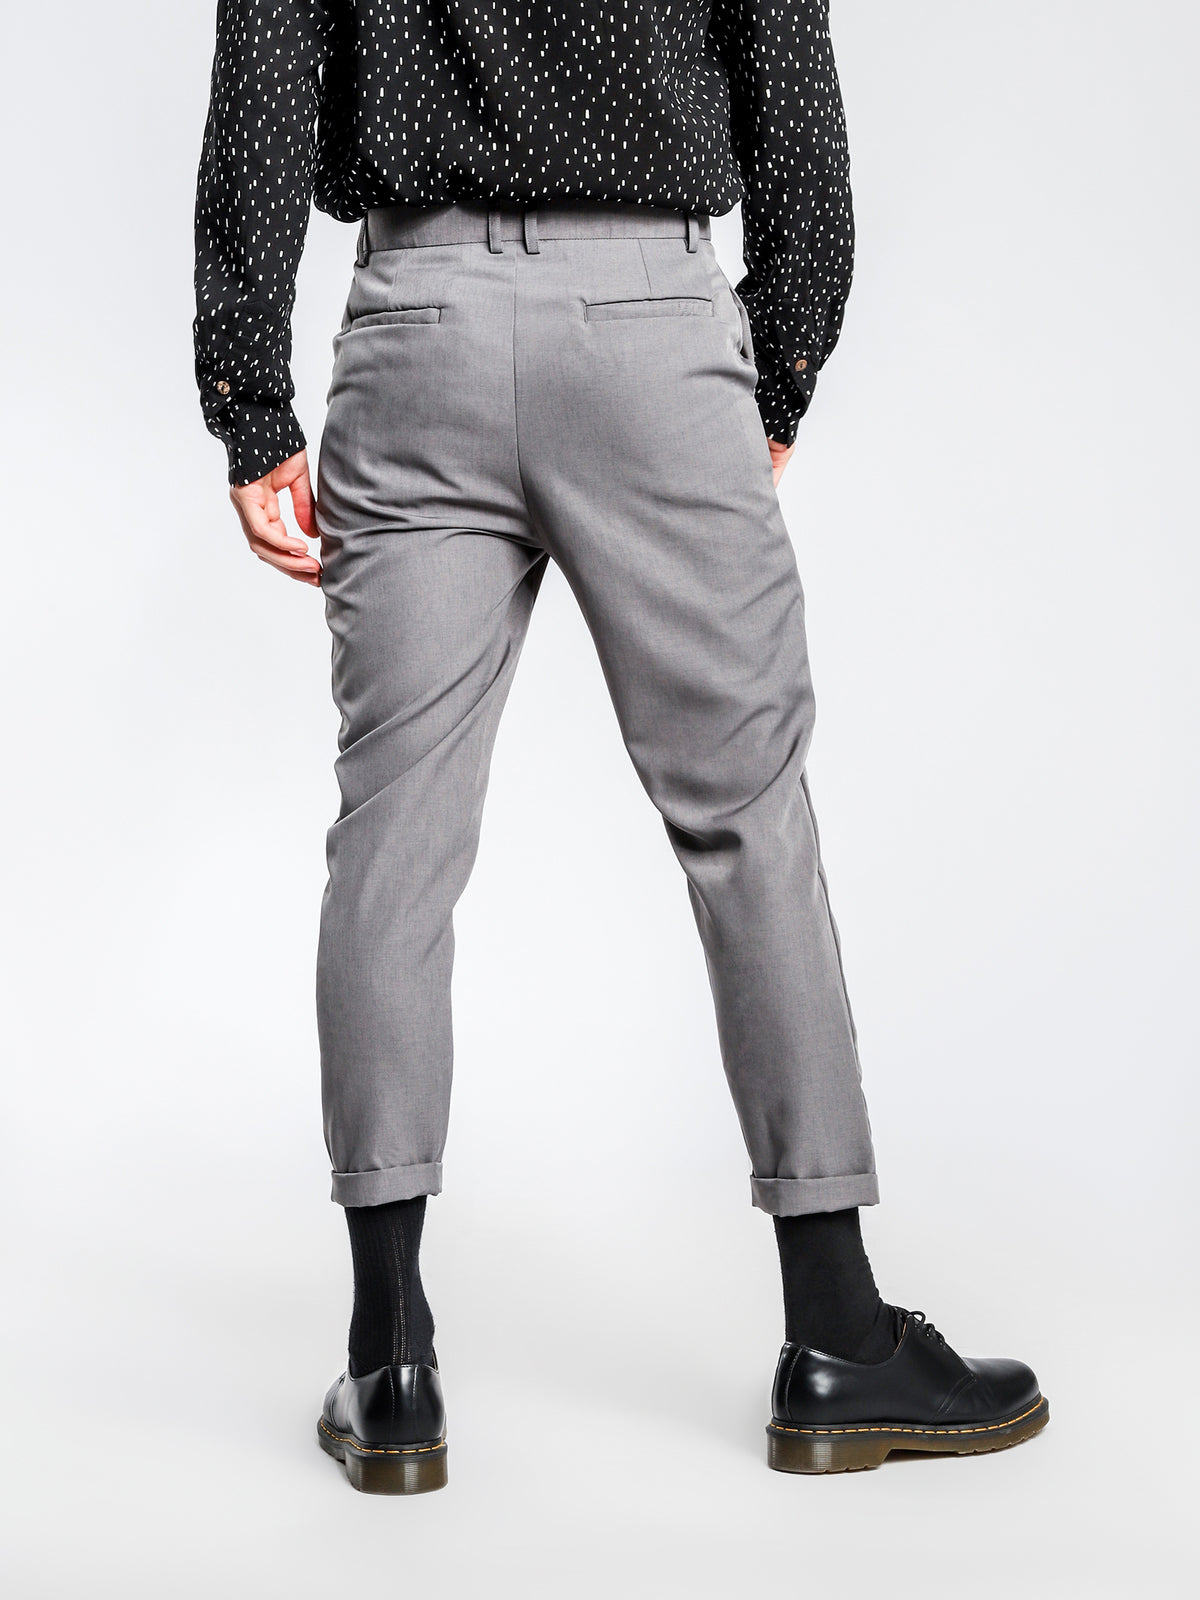 Vicious Pants in Grey